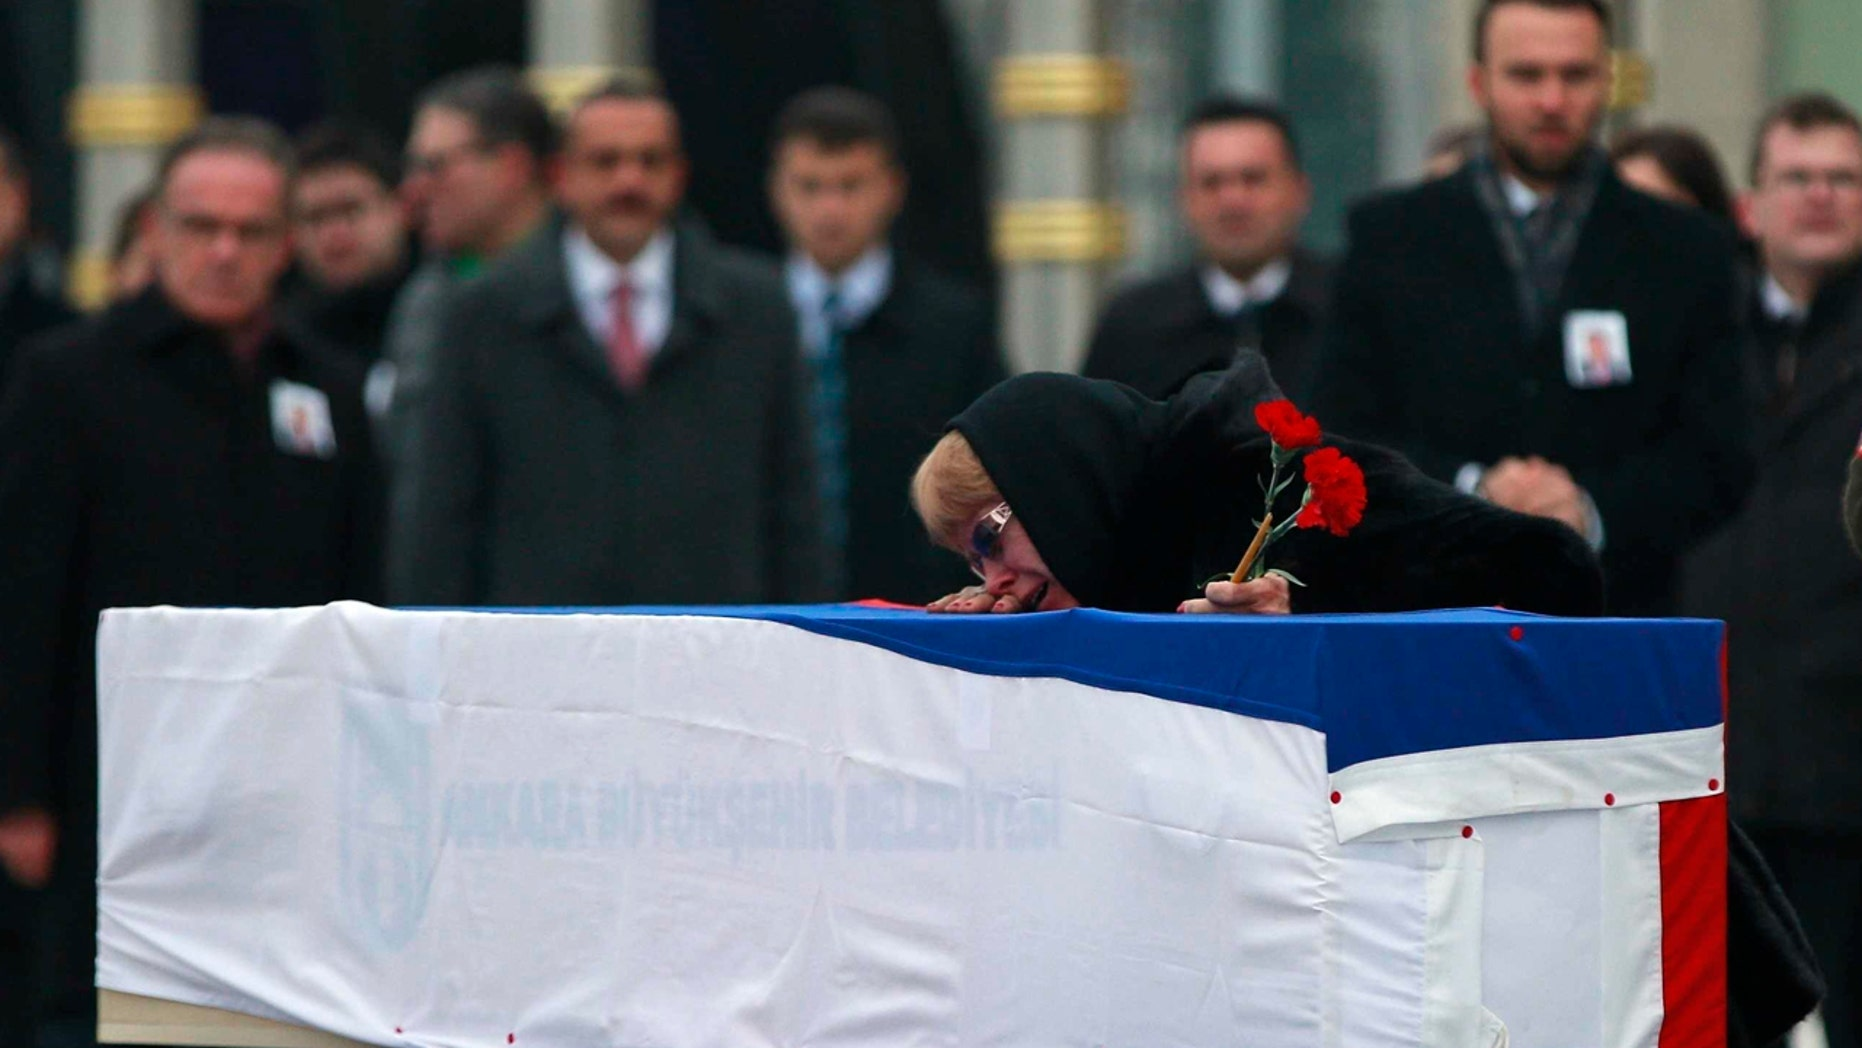 The wife of Russian Ambassador to Turkey Andrei Karlov who was assassinated Monday, cries over her husband's coffin, draped in the Russian flag, during a ceremony at the airport in Ankara, Turkey, Tuesday, Dec, 20, 2016. (AP Photo/ Emrah Gurel)